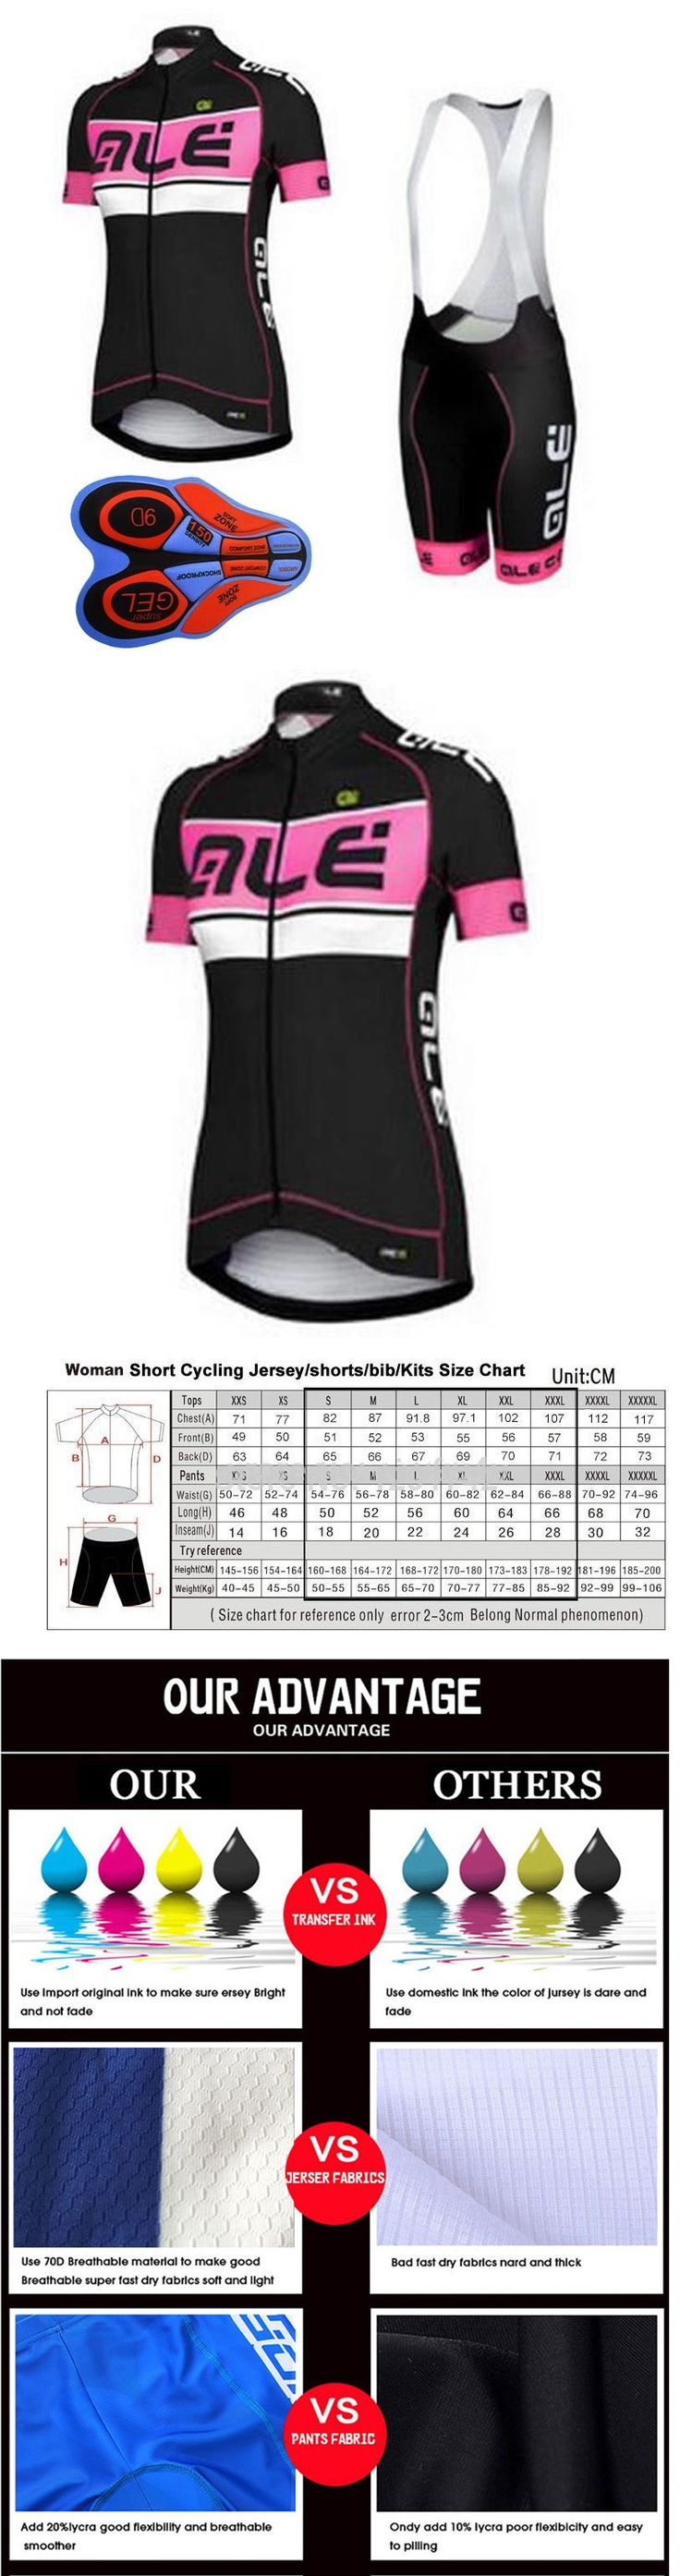 Jersey and Pant Short Sets 177852: C083 Women Cycling Jersey 9D Bib Shorts Bicycle Short Sleeve Sportswear Clothing -> BUY IT NOW ONLY: $33.25 on eBay!